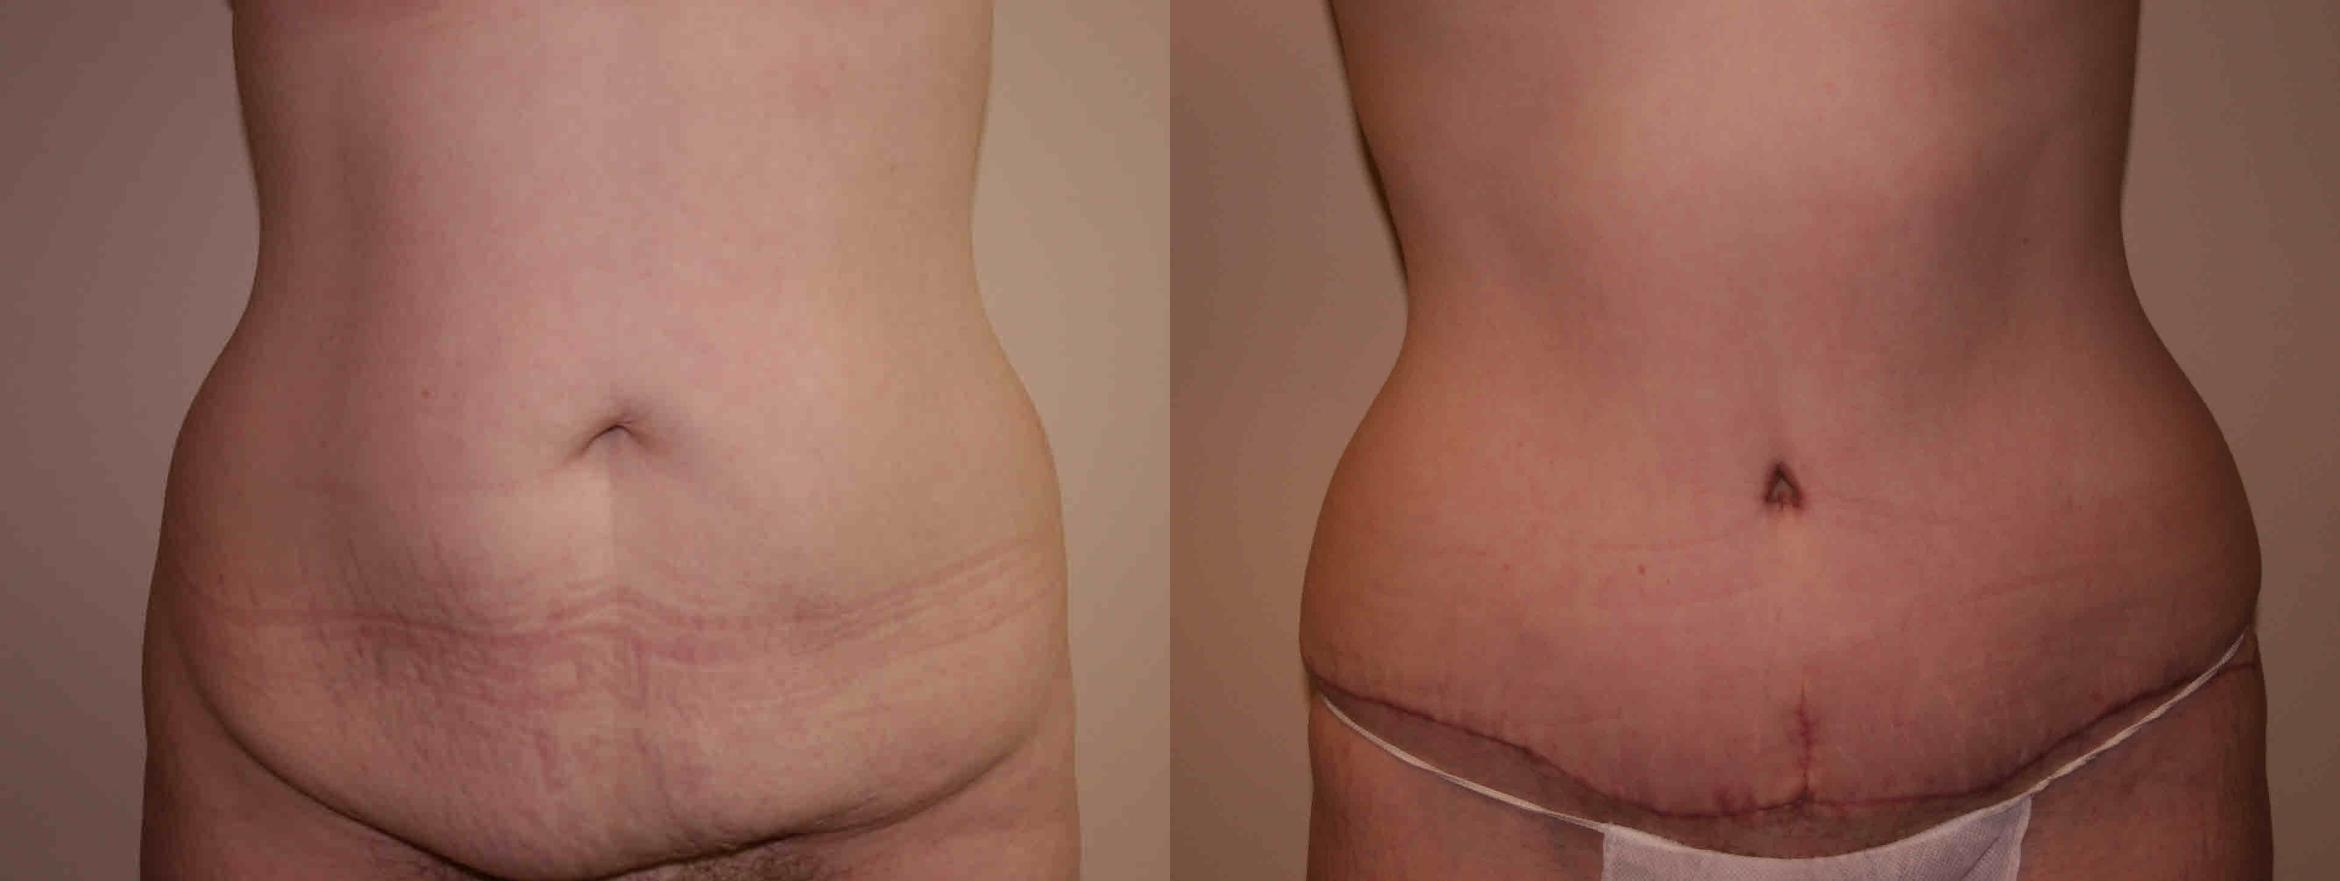 Tummy Tuck Case 35 Before & After View #1 | San Jose & Palo Alto, CA | Daryl K. Hoffman, MD